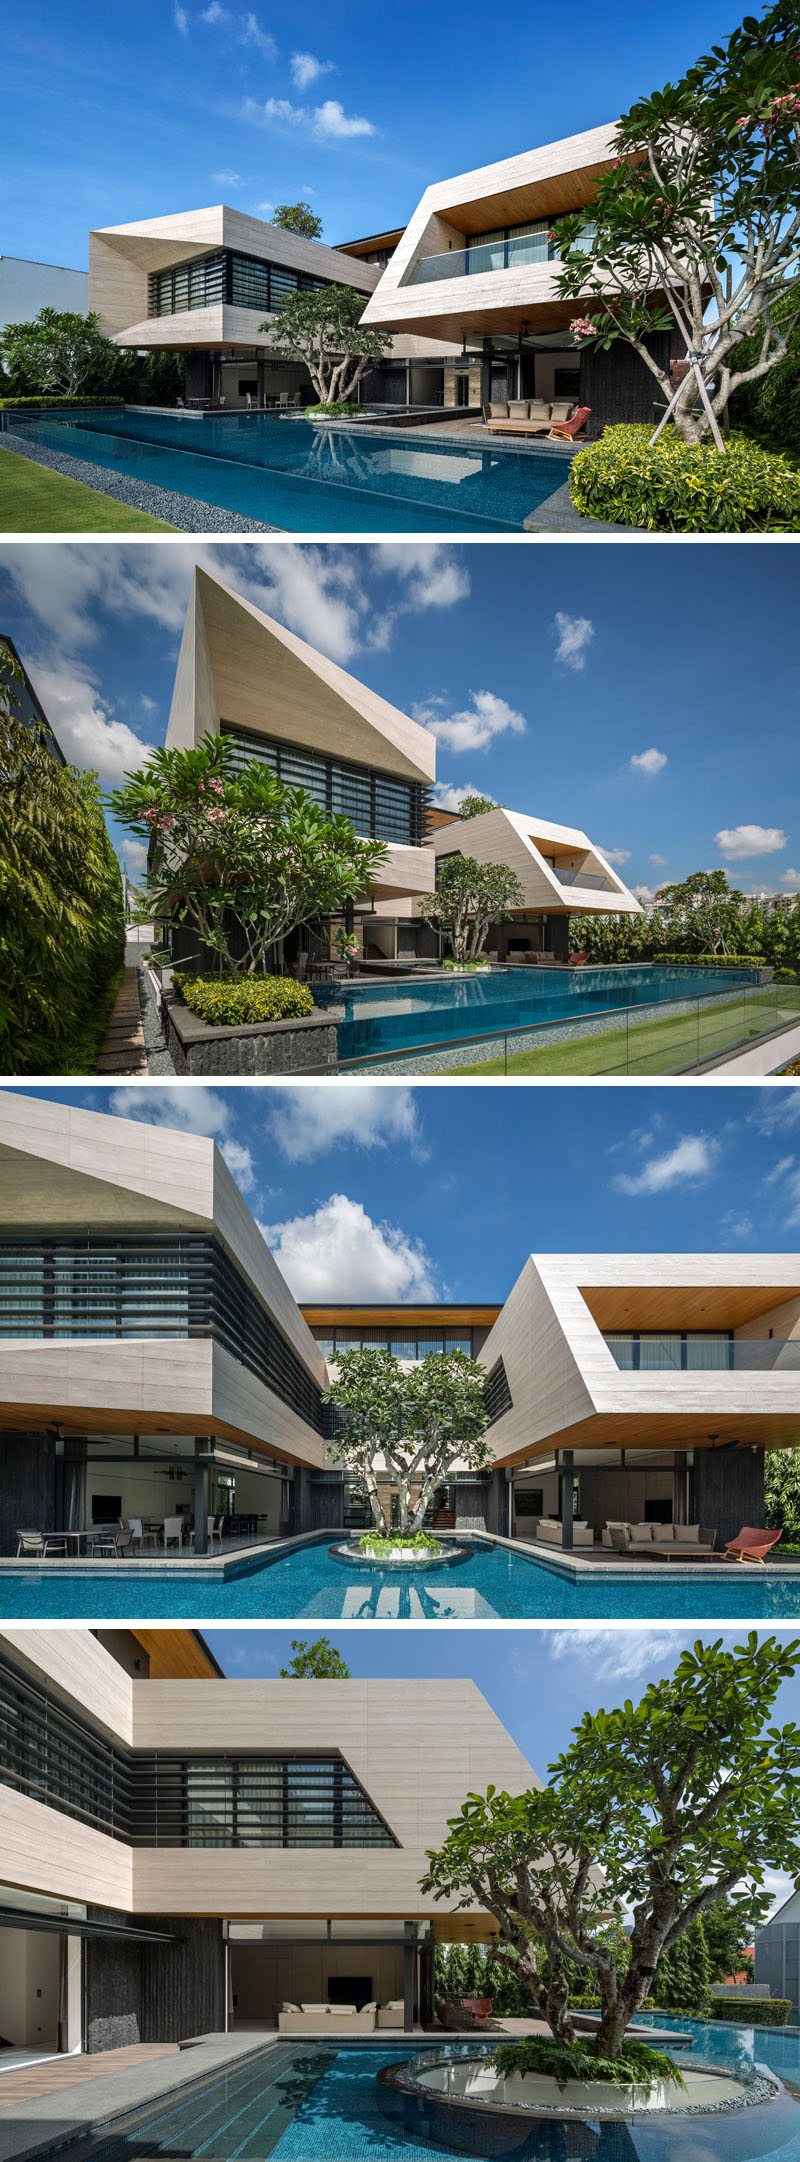 This modern house has a large pool with asingle Frangipani tree floating in the swimming pool, and the floating planter allows daylight and natural ventilation to the garage below. #SwimmingPool #Landscaping